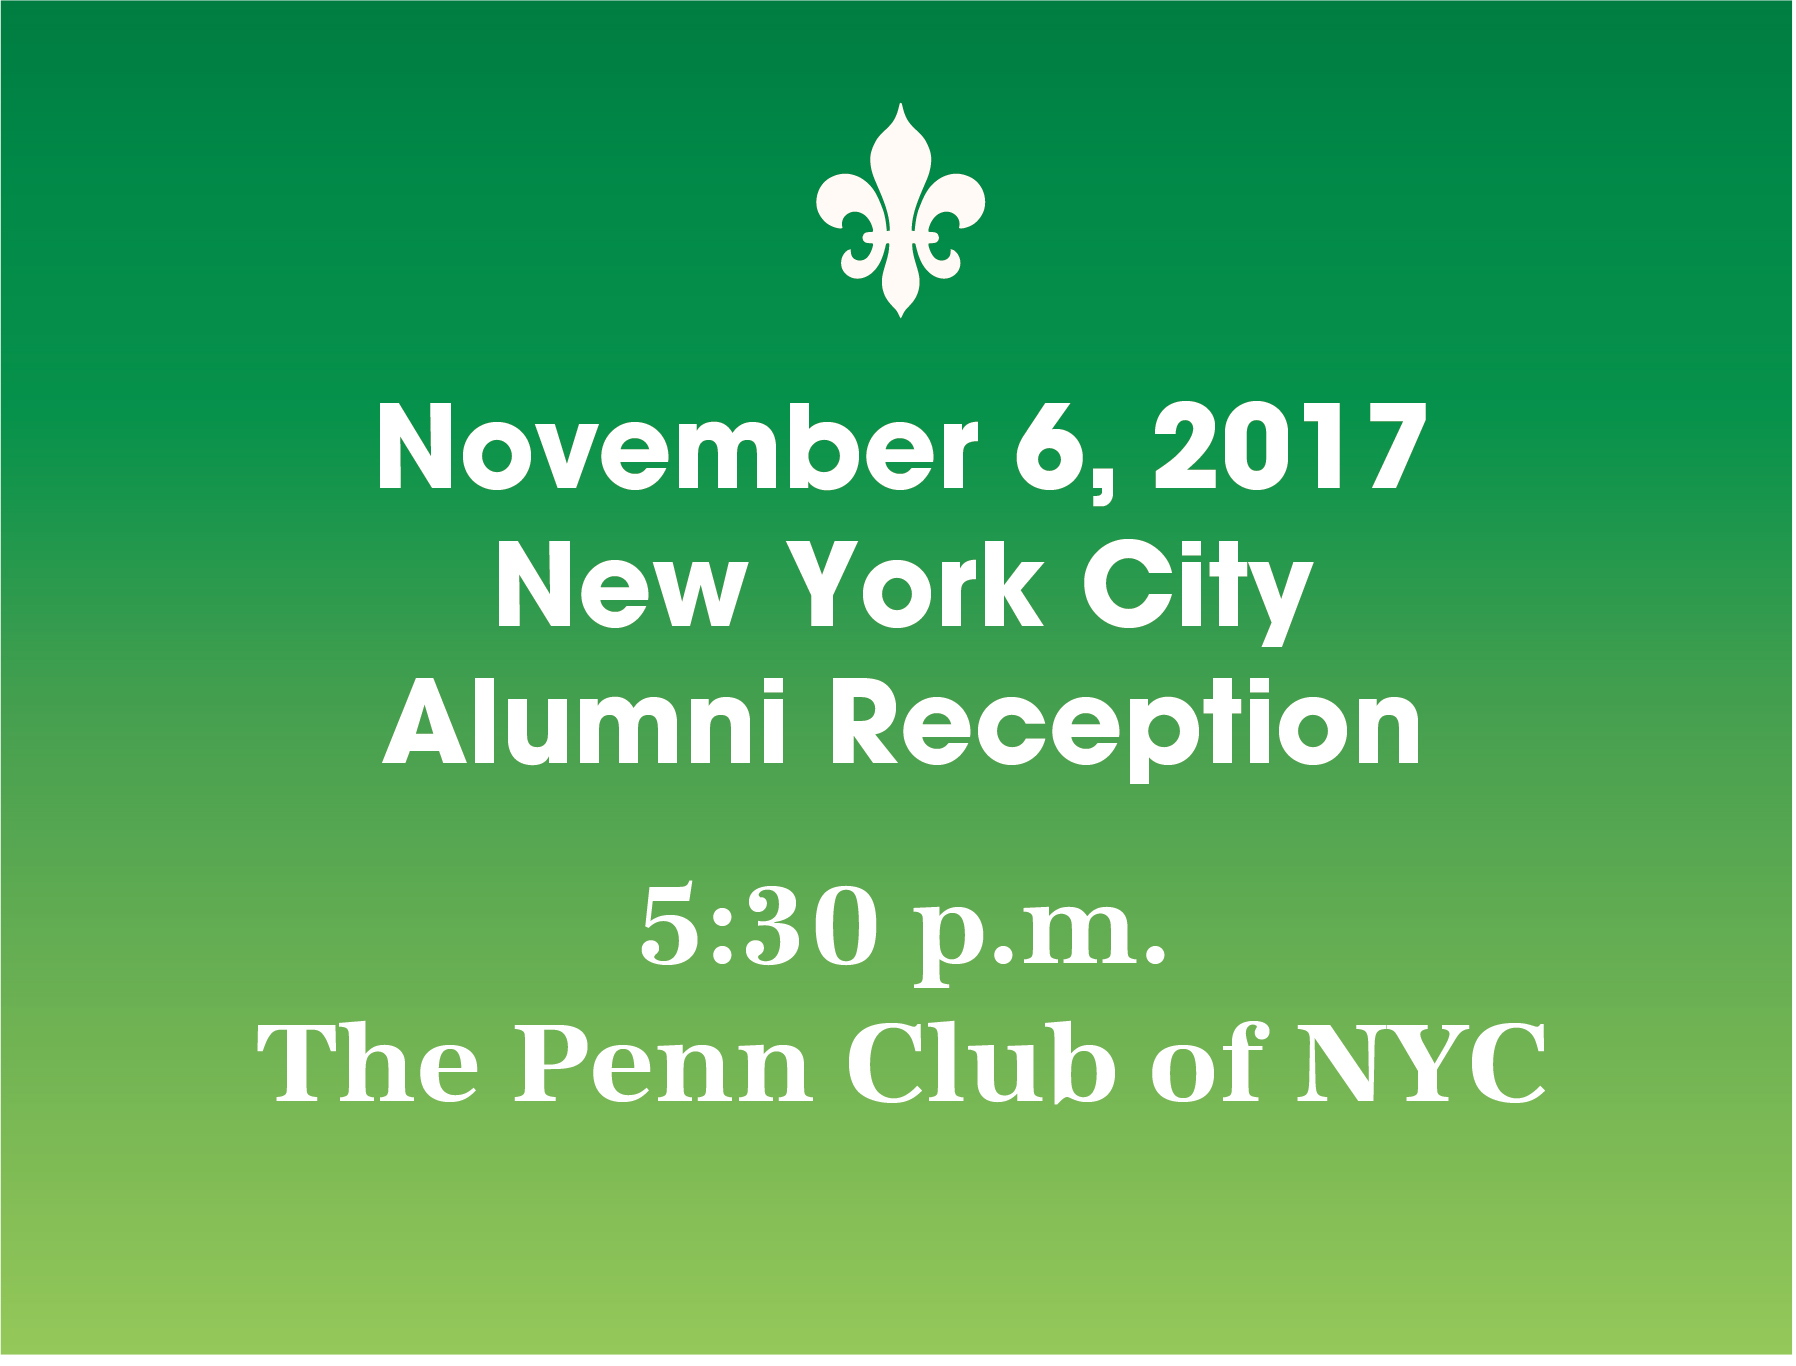 New York City Alumni Reception